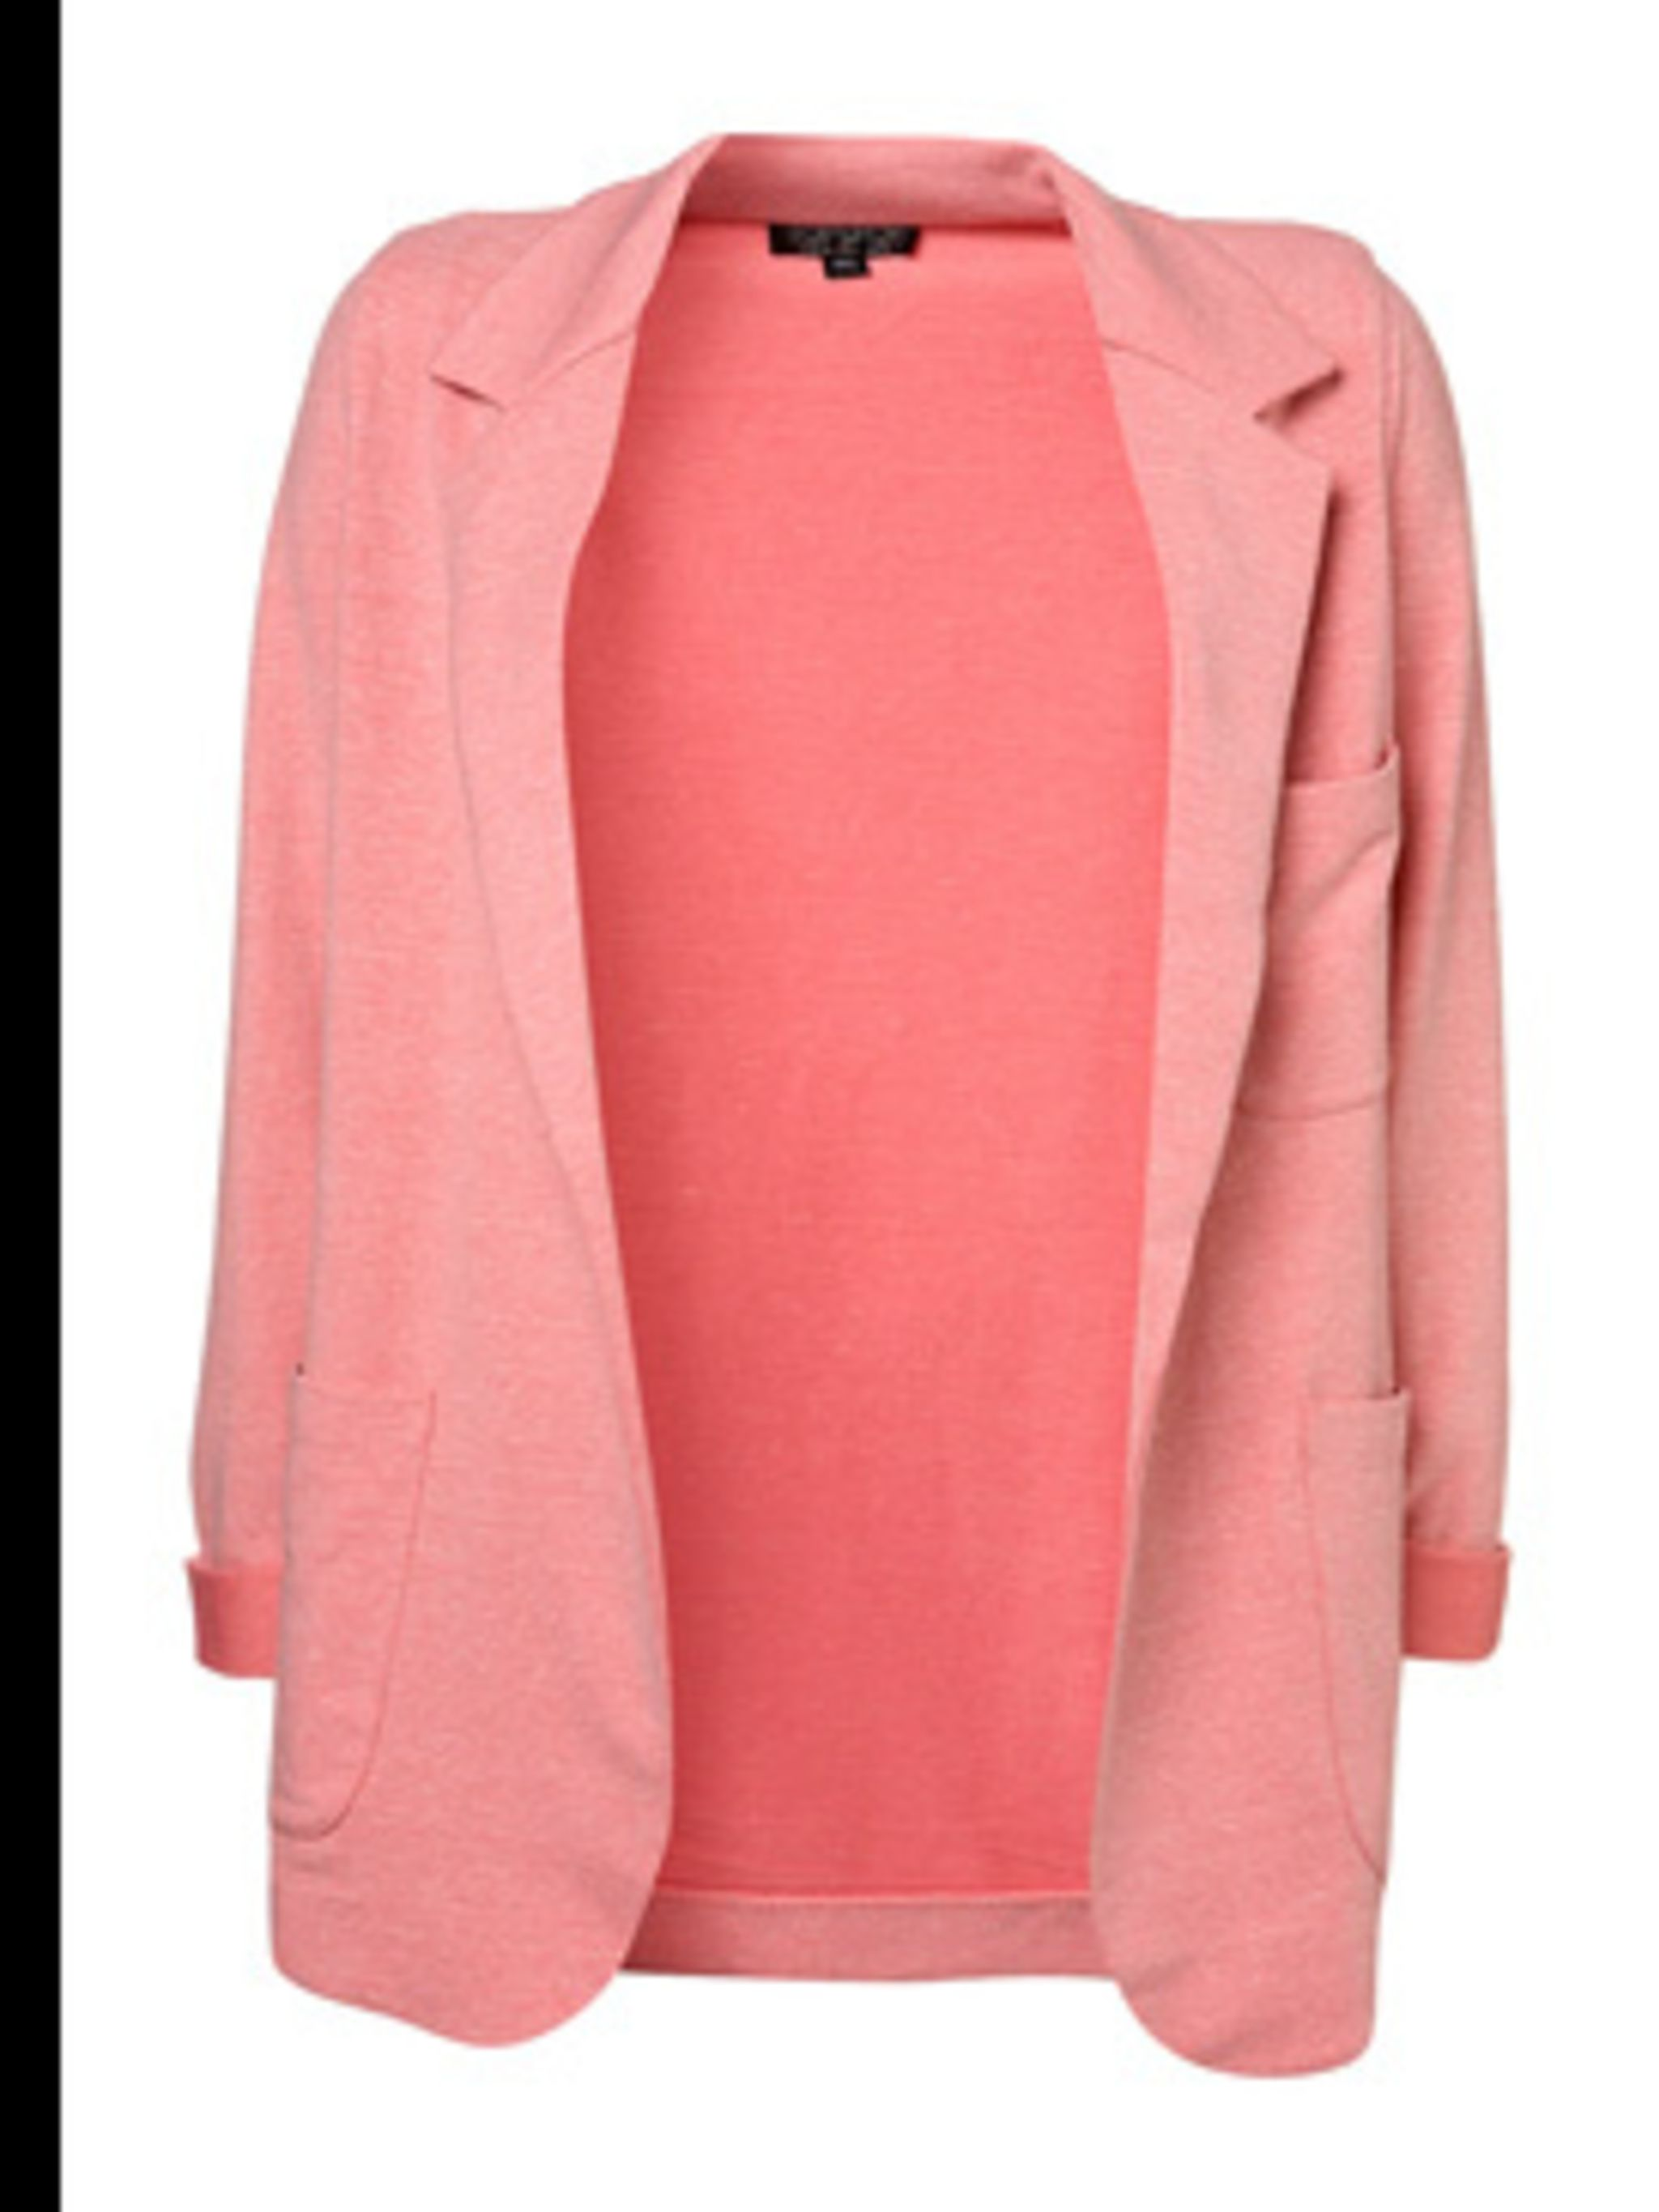 "<p>Casual coral jacket, £40, by <a href=""http://www.topshop.com/webapp/wcs/stores/servlet/CategoryDisplay?catalogId=19551&storeId=12556&categoryId=42347&langId=-1&top=Y"">Topshop</a></p>"